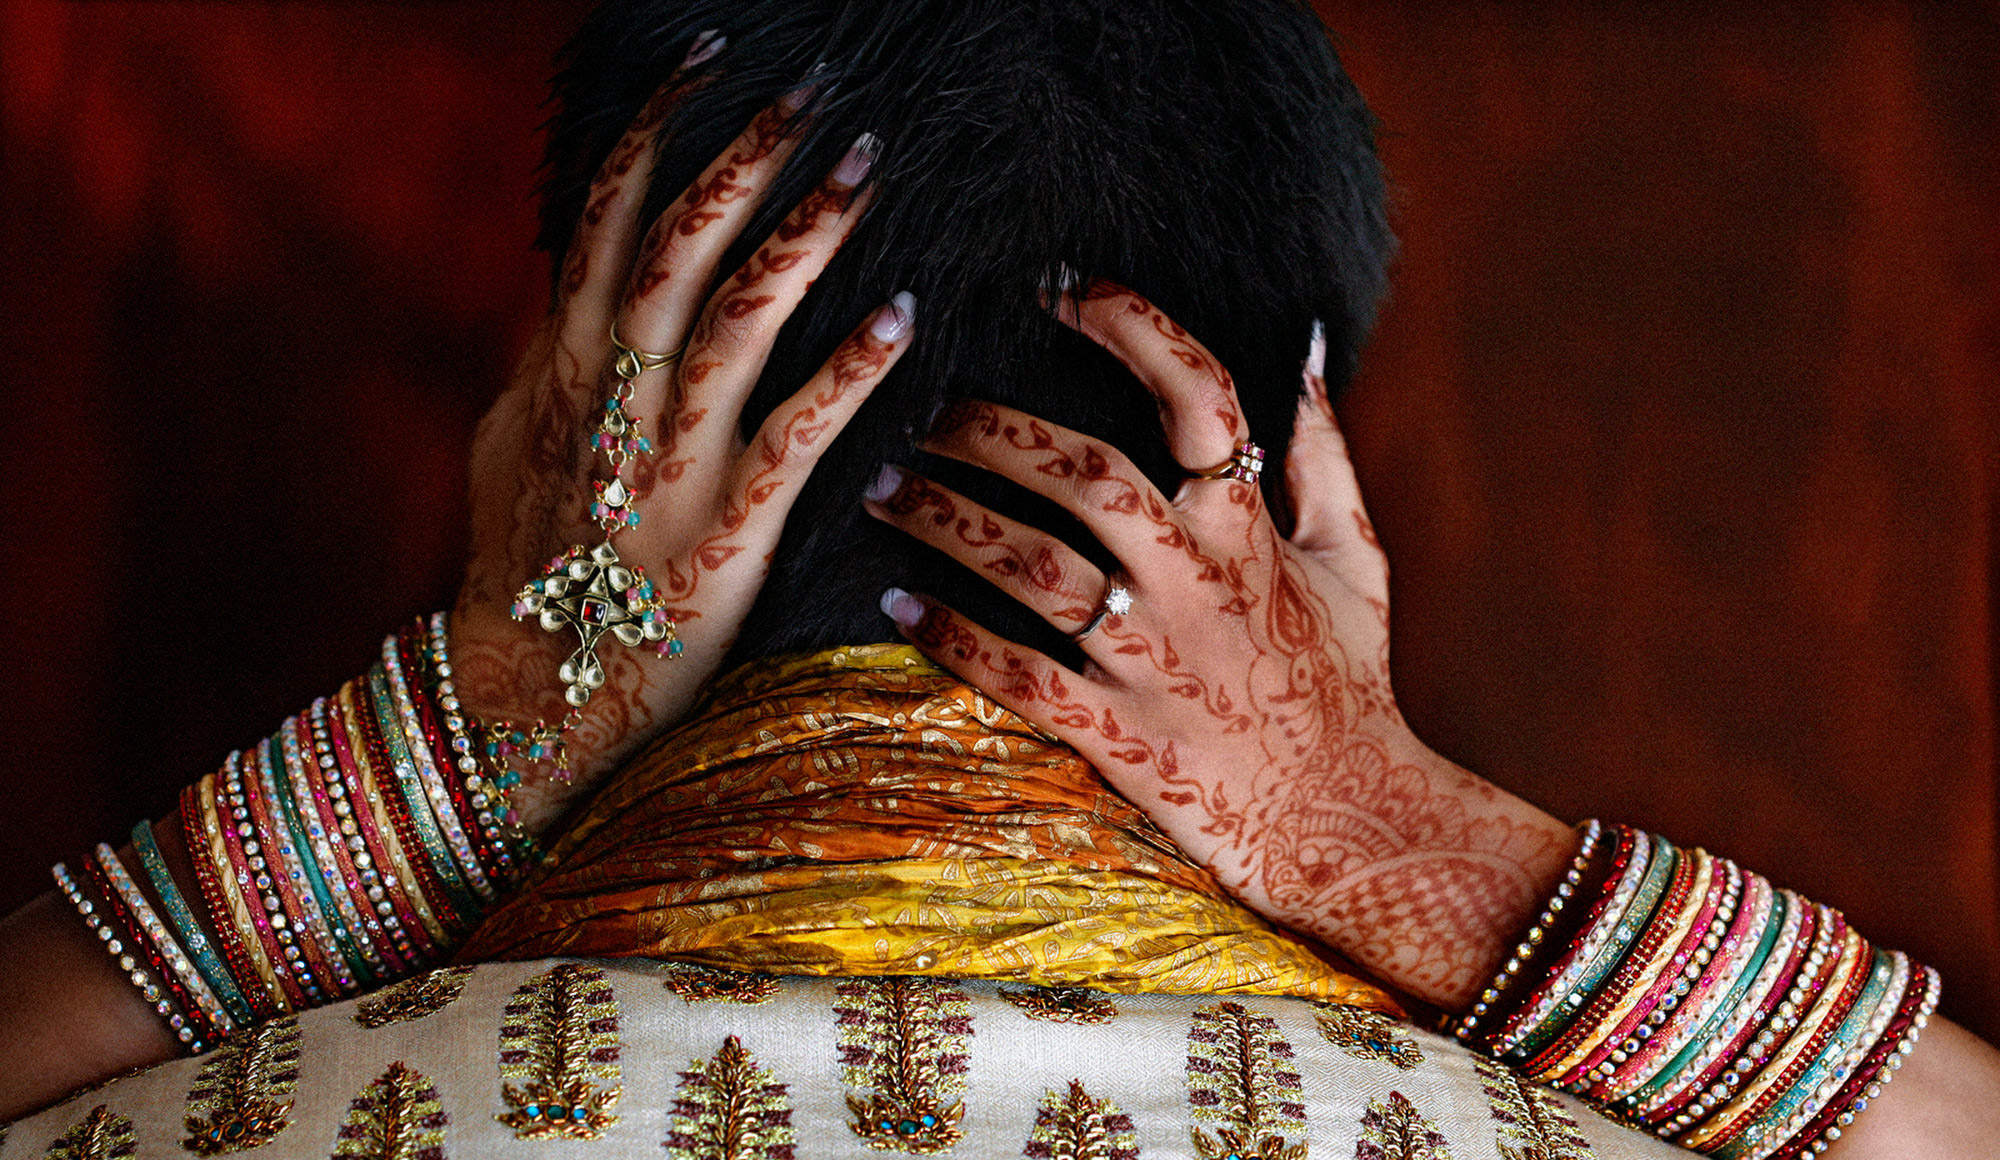 Mendhi hands with Indian jewelry Bride by Jerry Ghionis